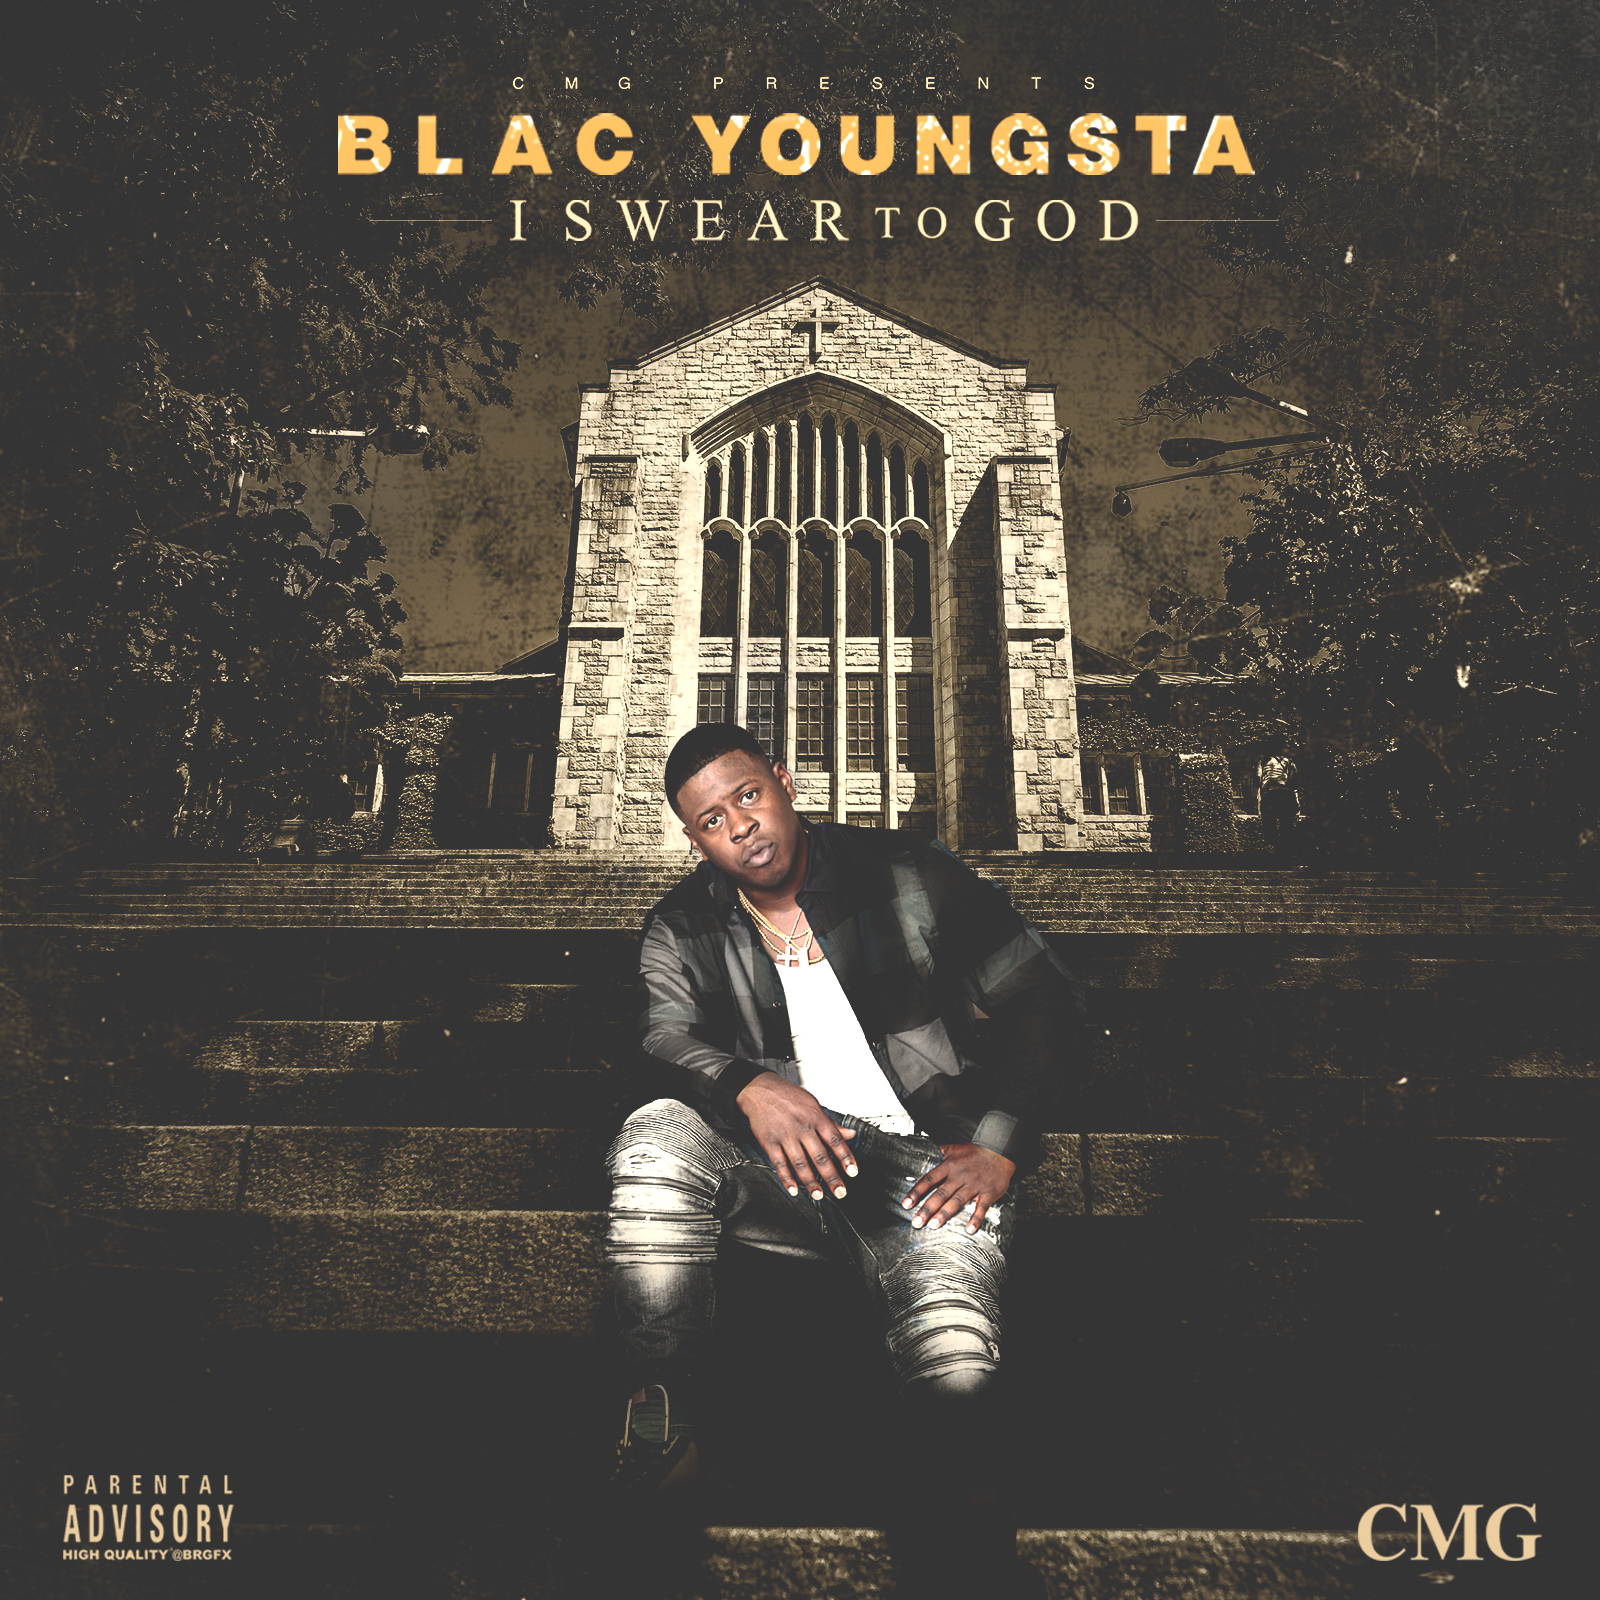 Blac Youngsta - I Swear To God Cover Art